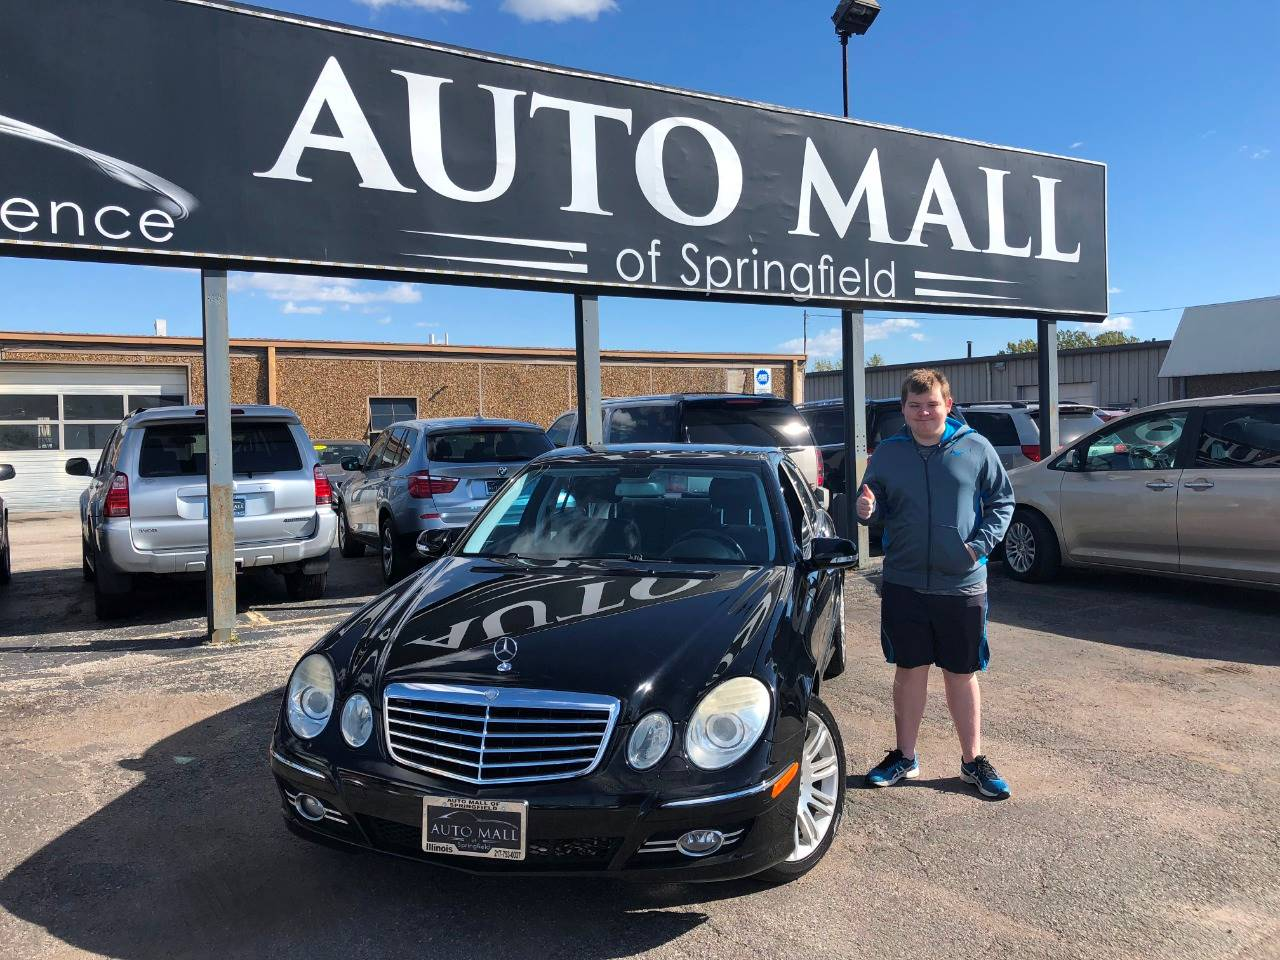 auto mall of springfield reviews